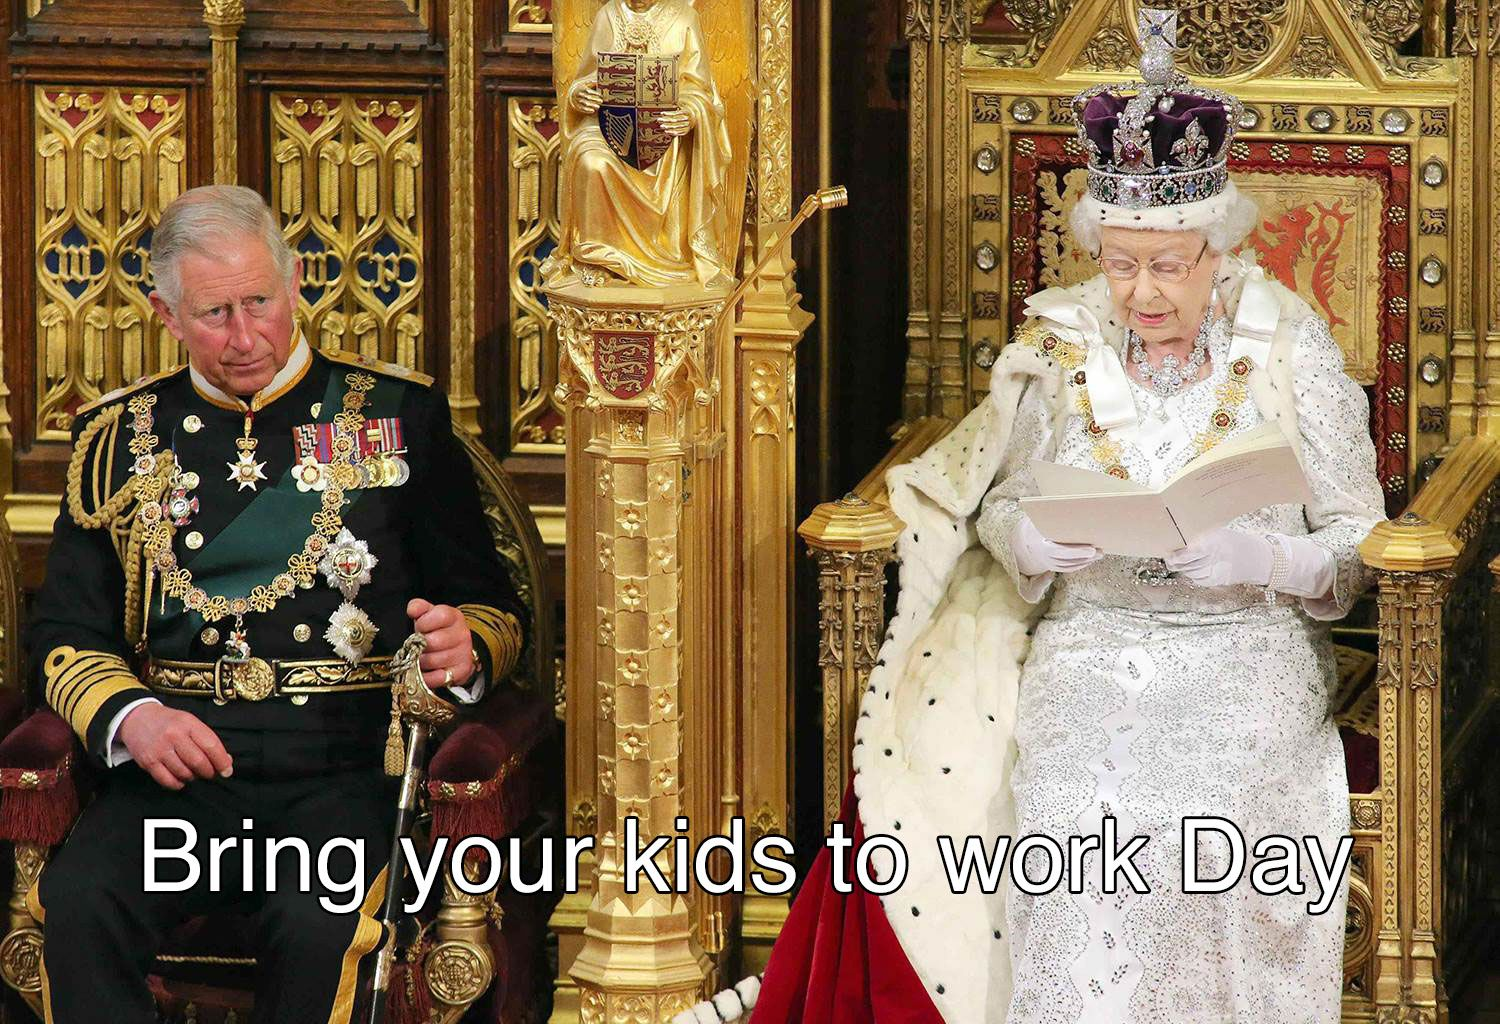 20 Picture Of Queen Of England And Prince Charles Sitting On The Throne In Full Costume With Caption Joking Prince Charles Queen Elizabeth Queen Of England [ 1024 x 1500 Pixel ]